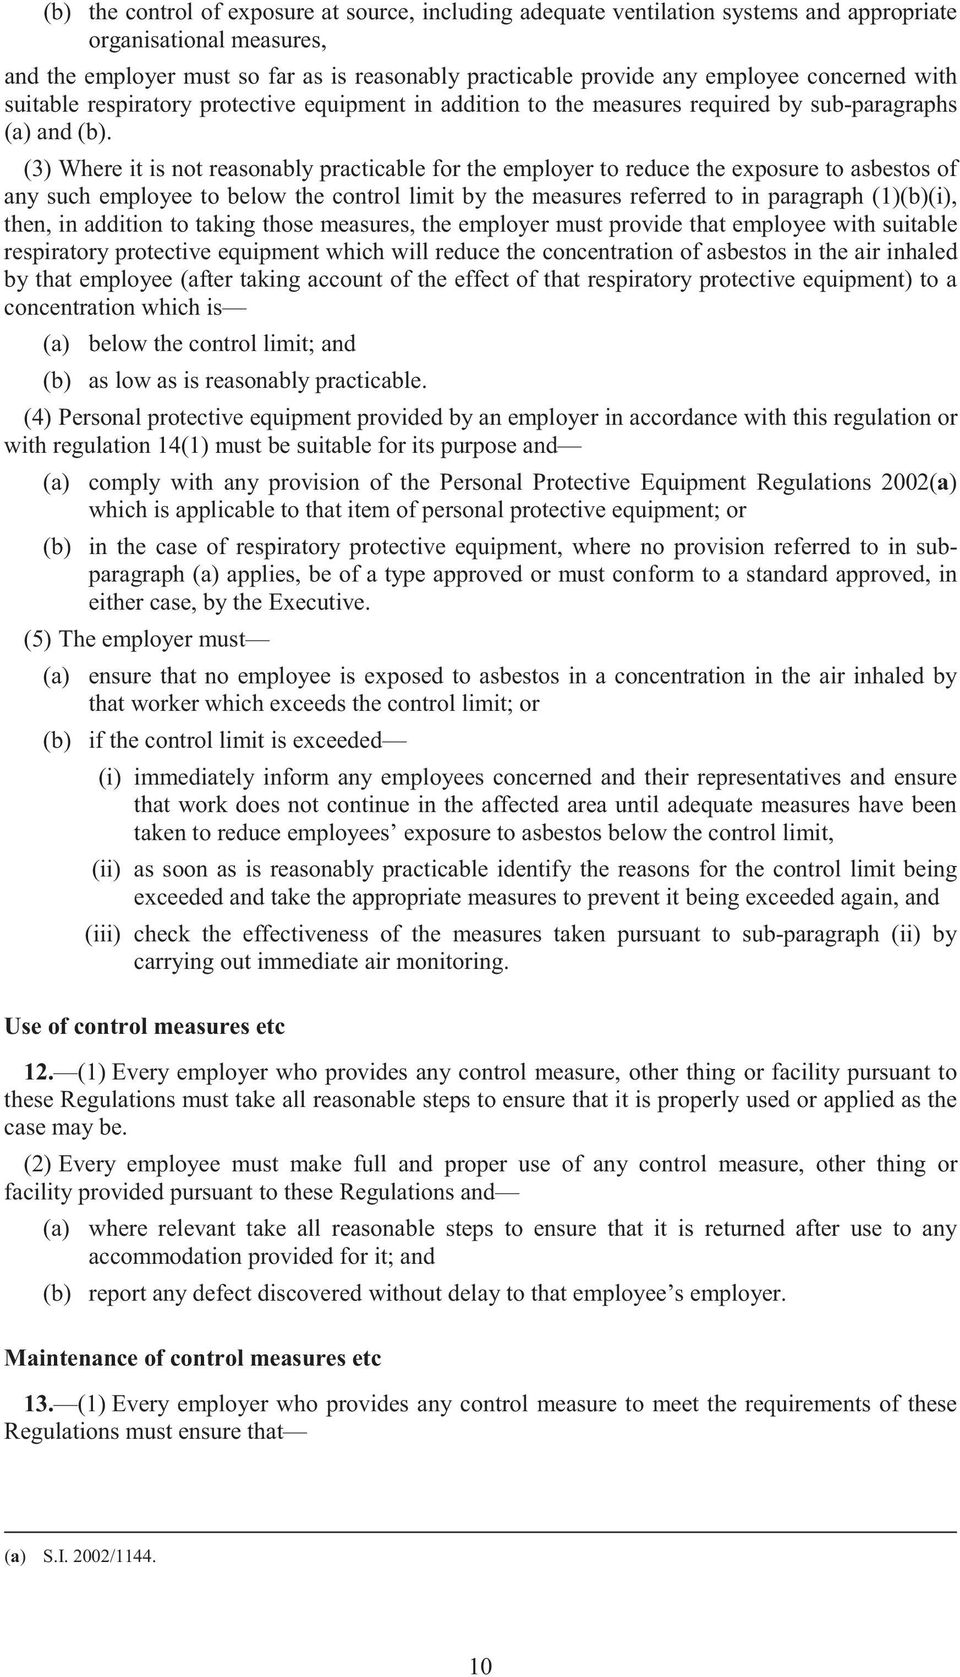 (3) Where it is not reasonably practicable for the employer to reduce the exposure to asbestos of any such employee to below the control limit by the measures referred to in paragraph (1)(b)(i),